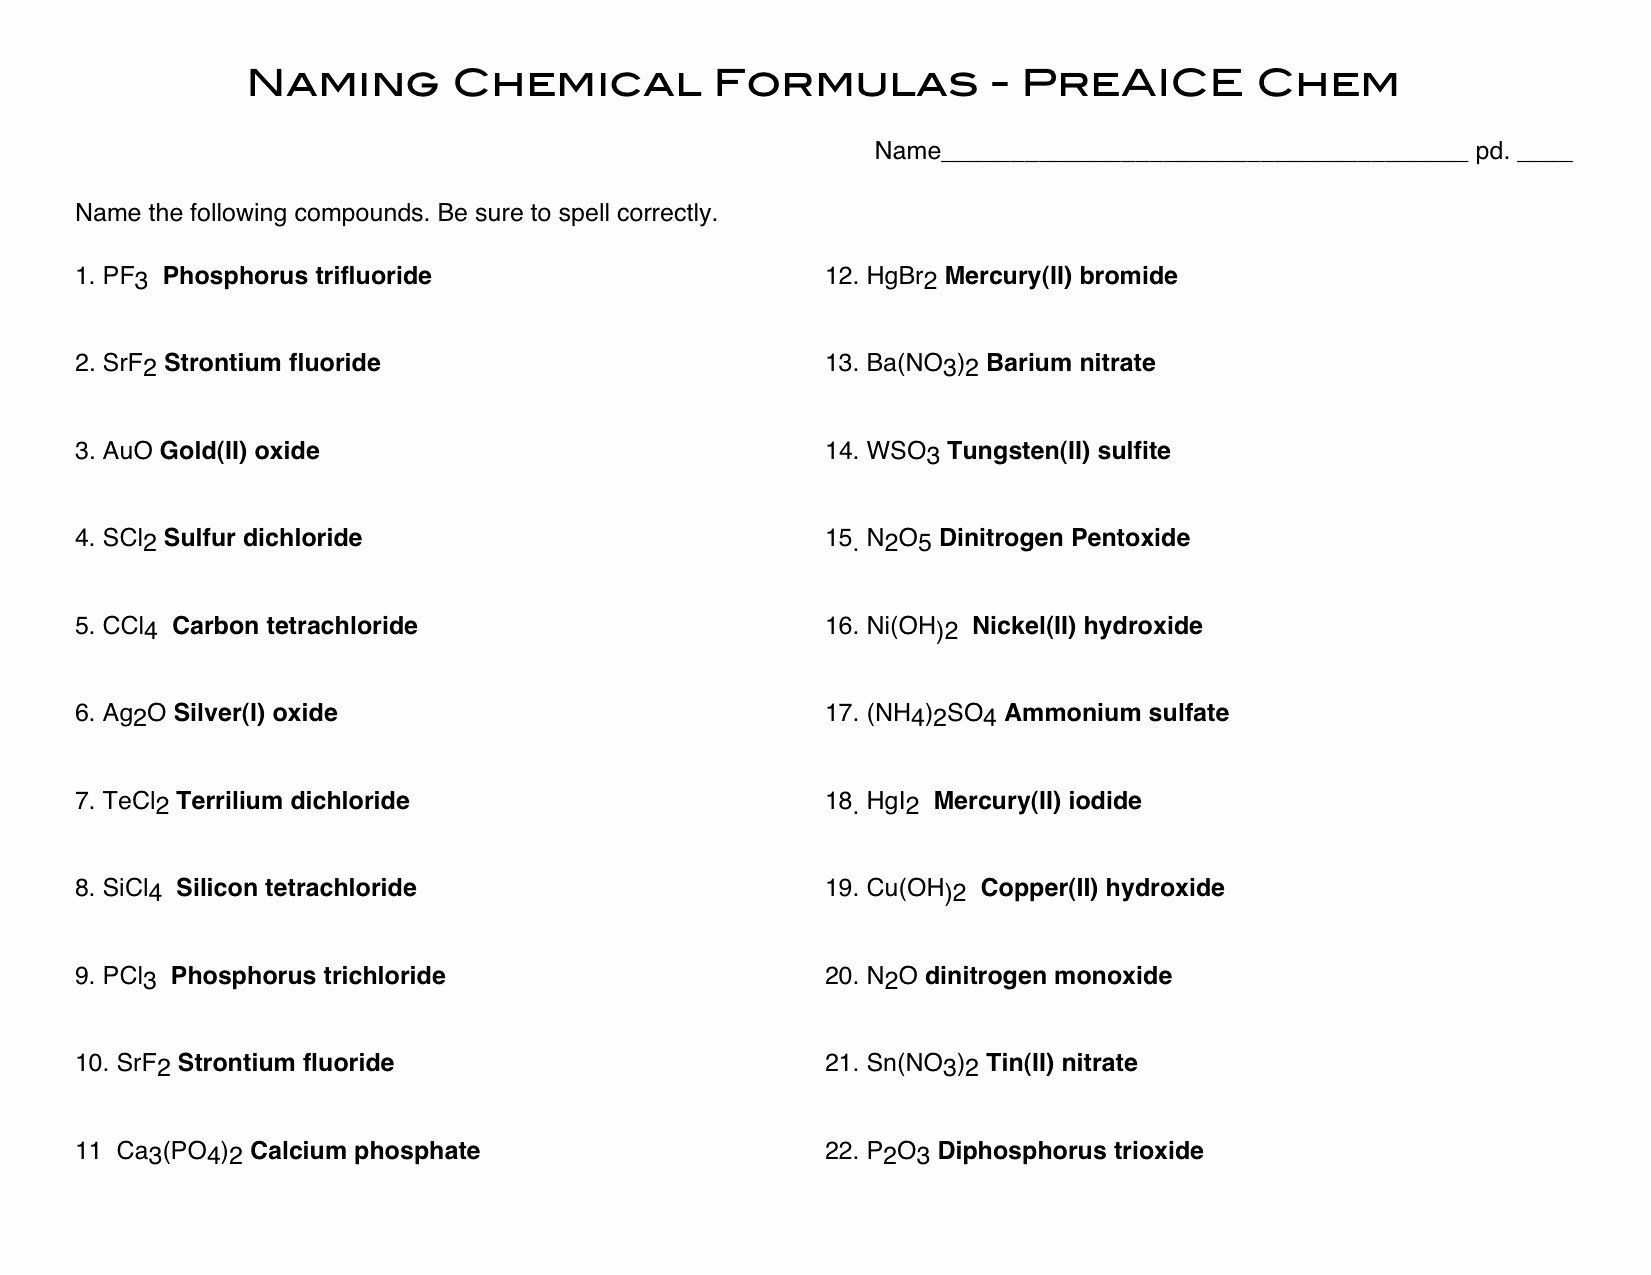 50 Naming Chemical Compounds Worksheet Answers in 2020